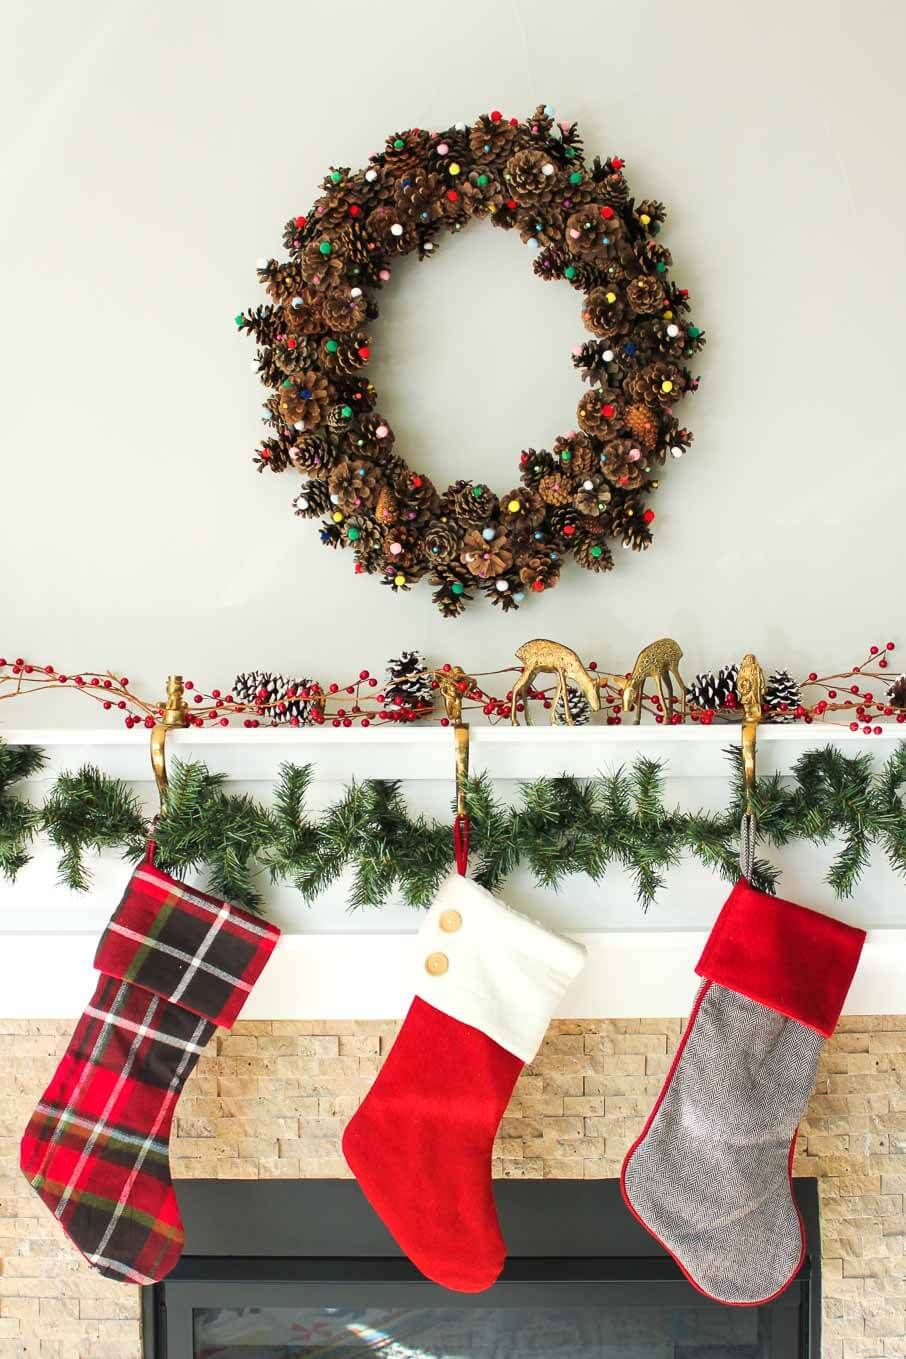 Pinecone wreath above the fireplace